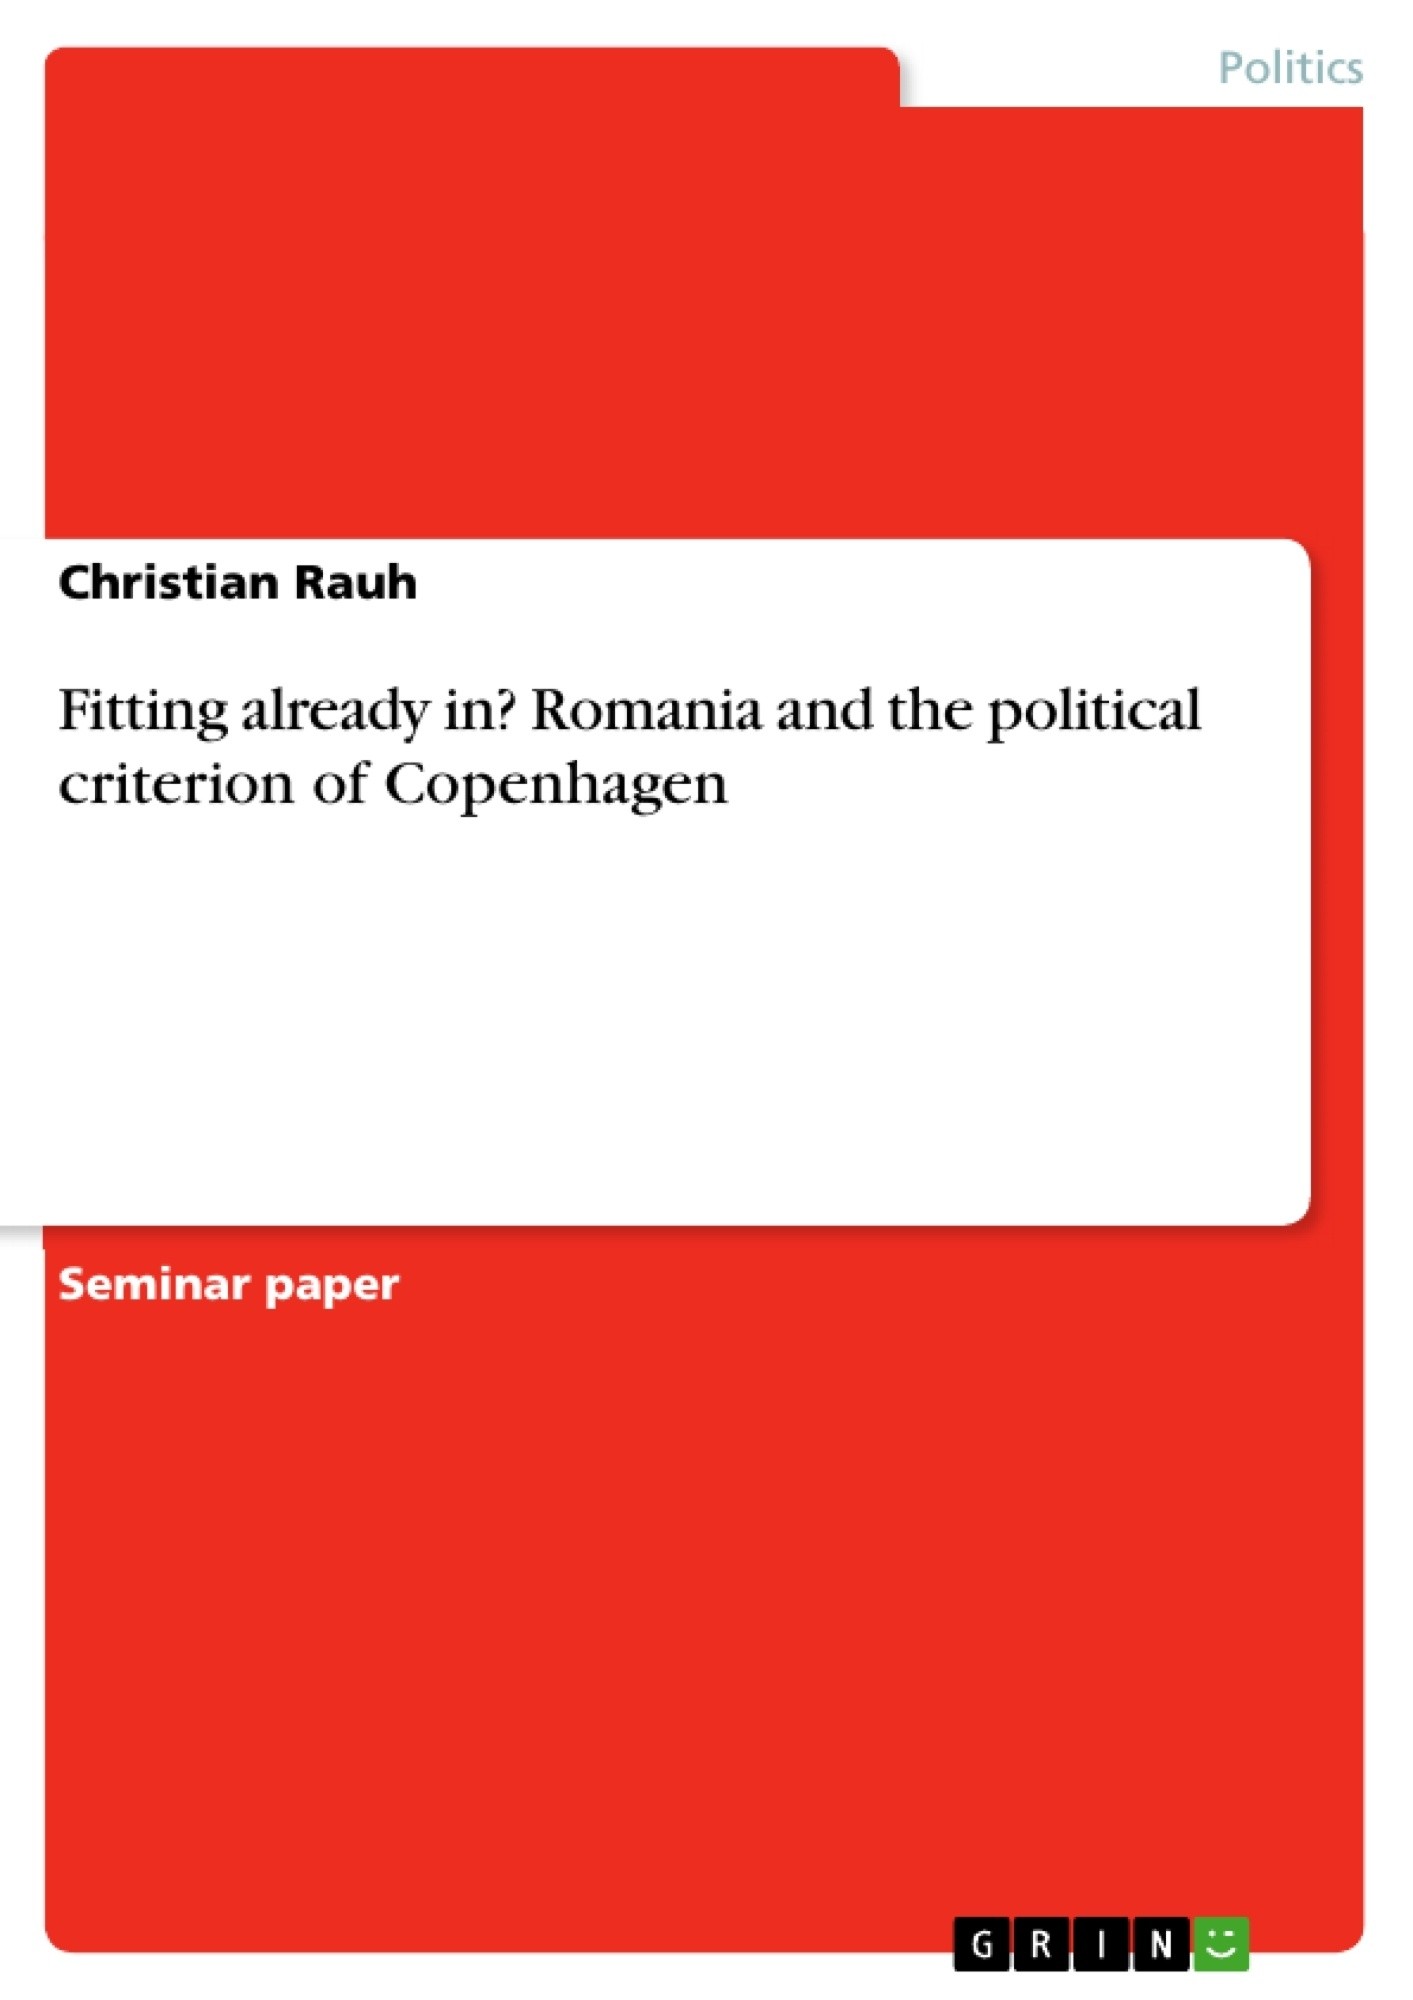 Title: Fitting already in? Romania and the political criterion of Copenhagen